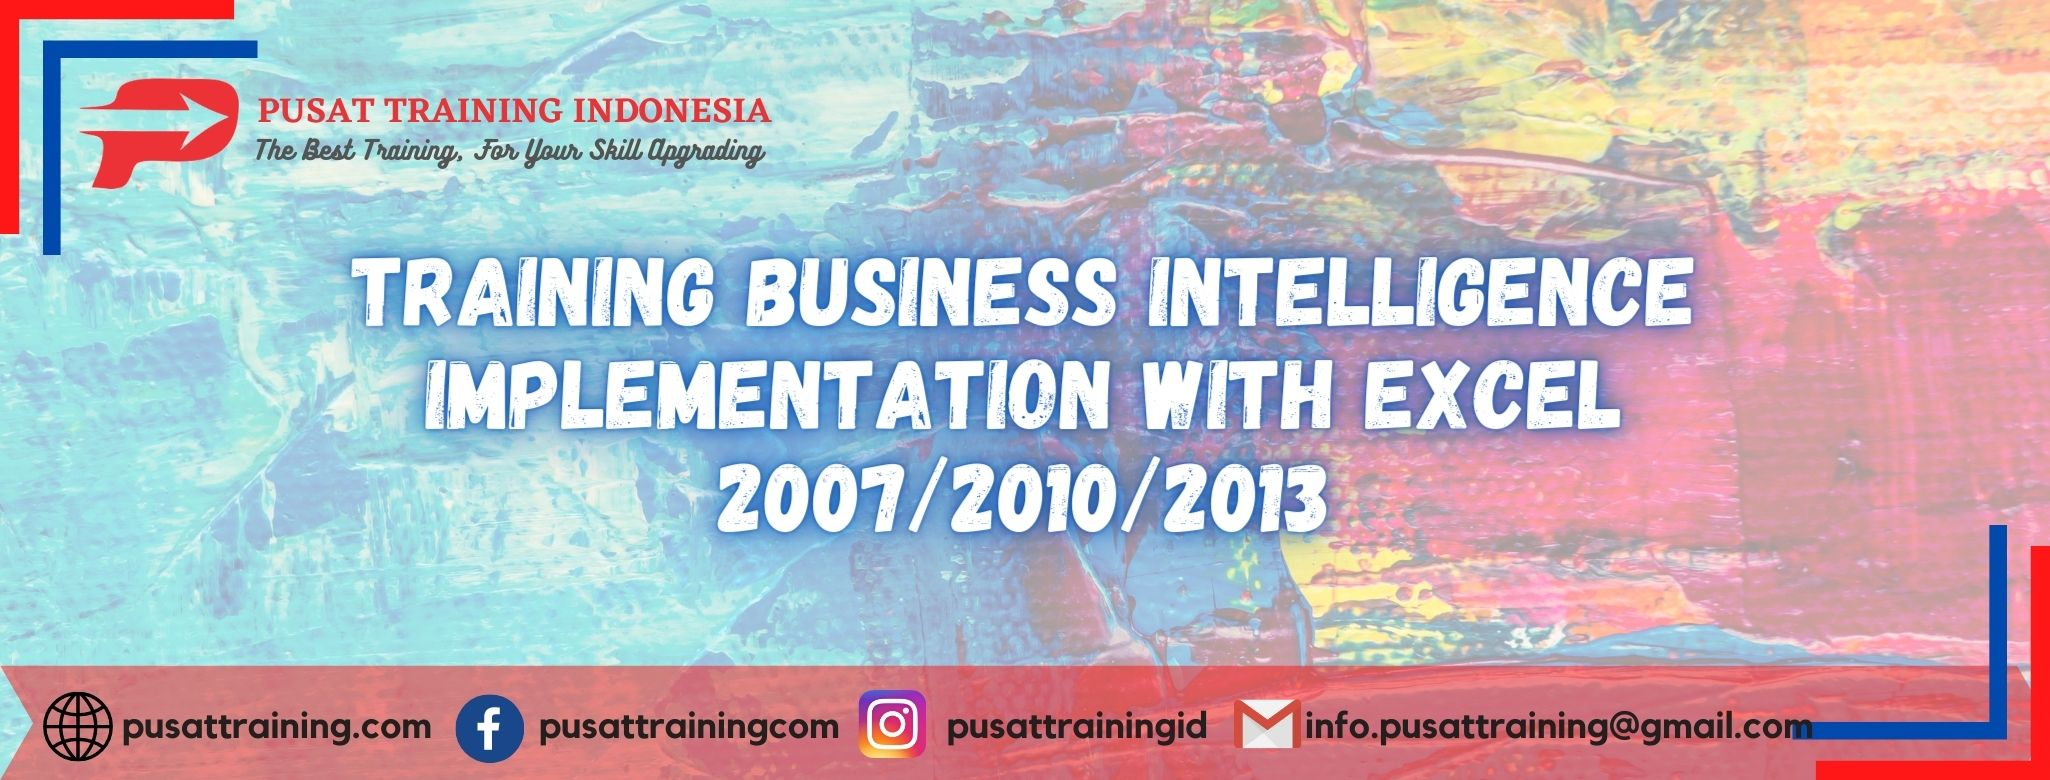 Training-Business-Intelligence-Implementation-with-Excel-2007_2010_2013